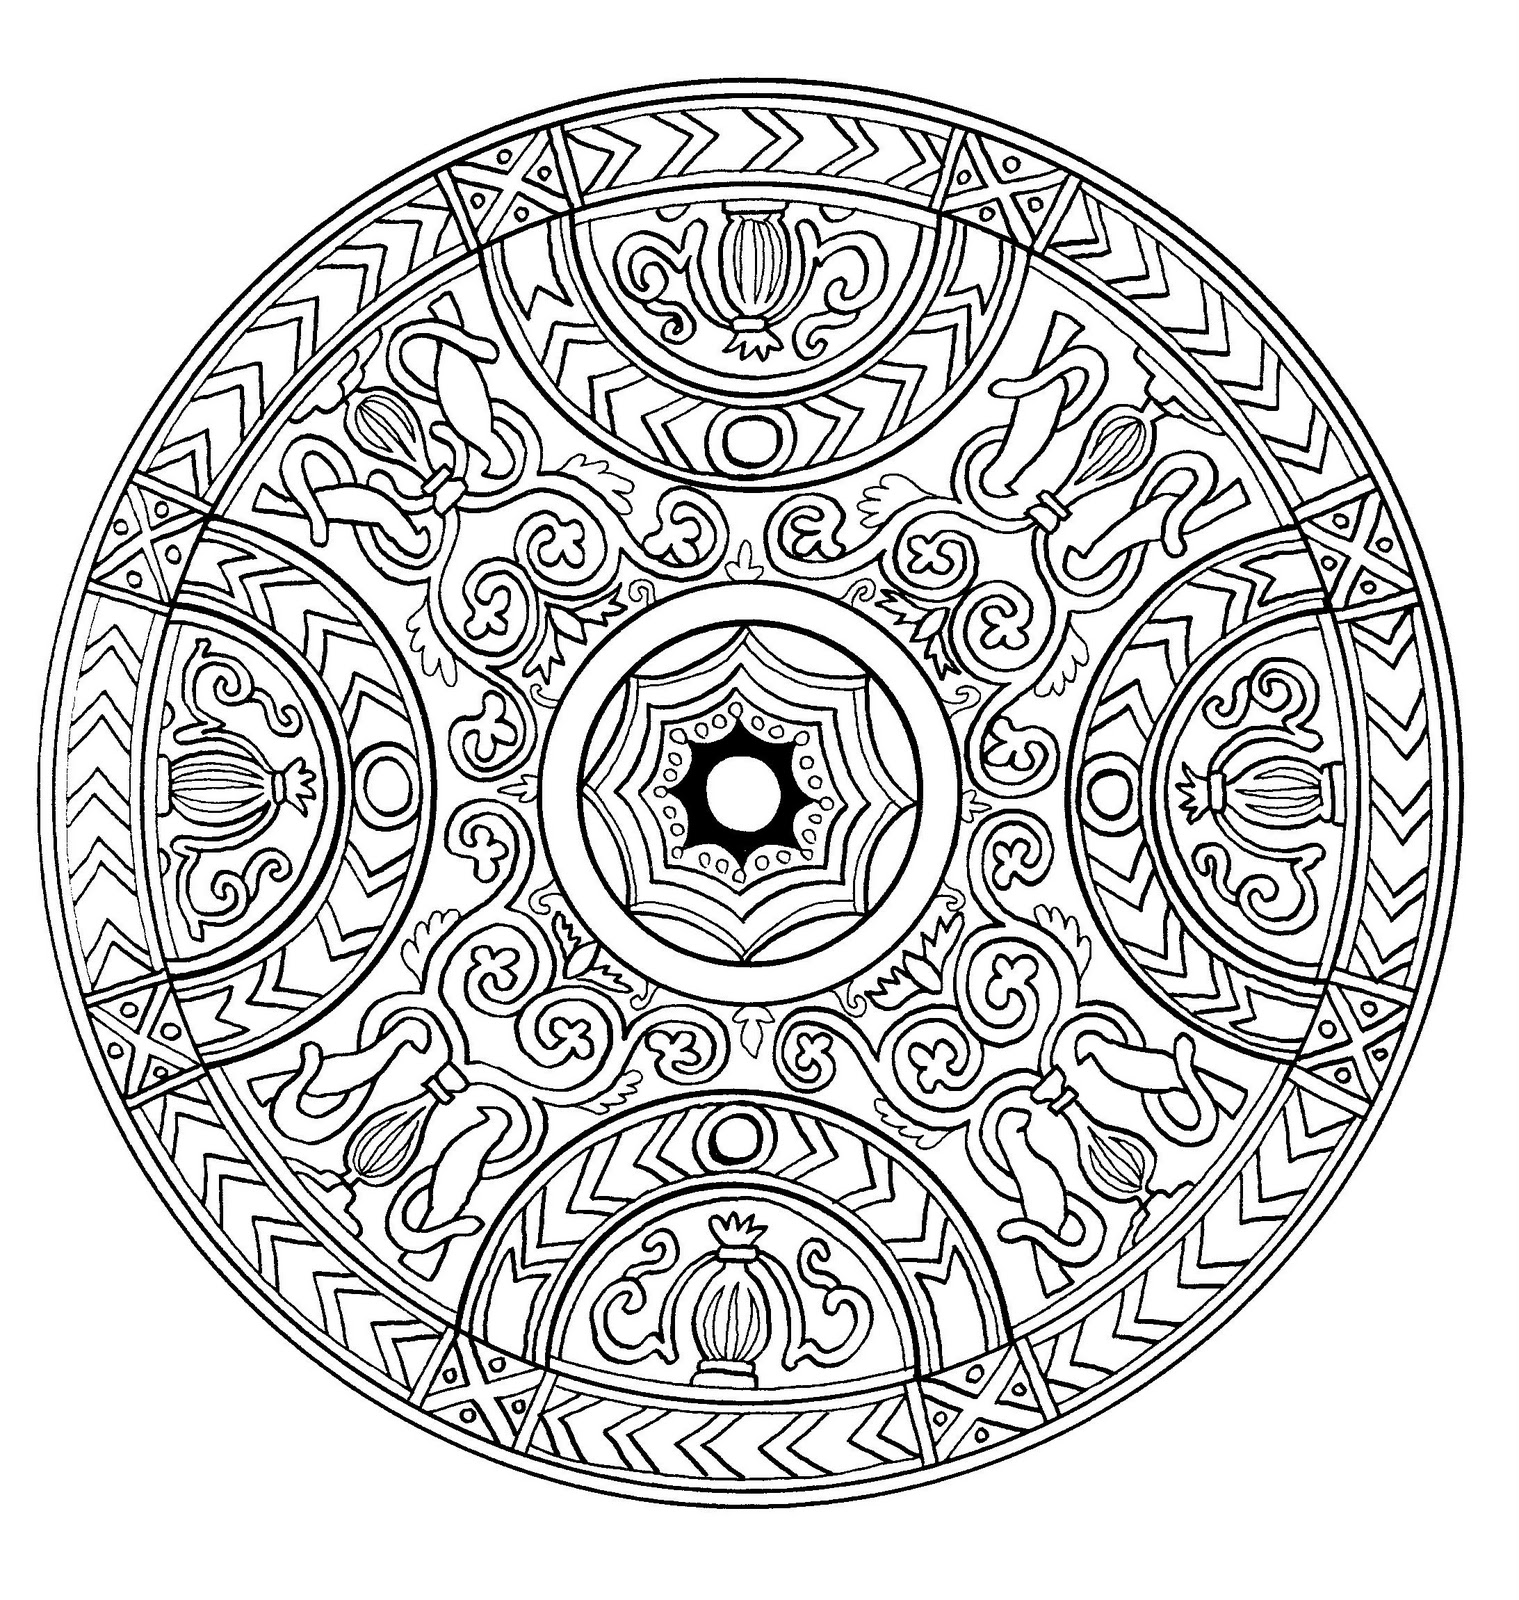 mandala a imprimer 1 coloriage mandalas coloriages pour enfants. Black Bedroom Furniture Sets. Home Design Ideas